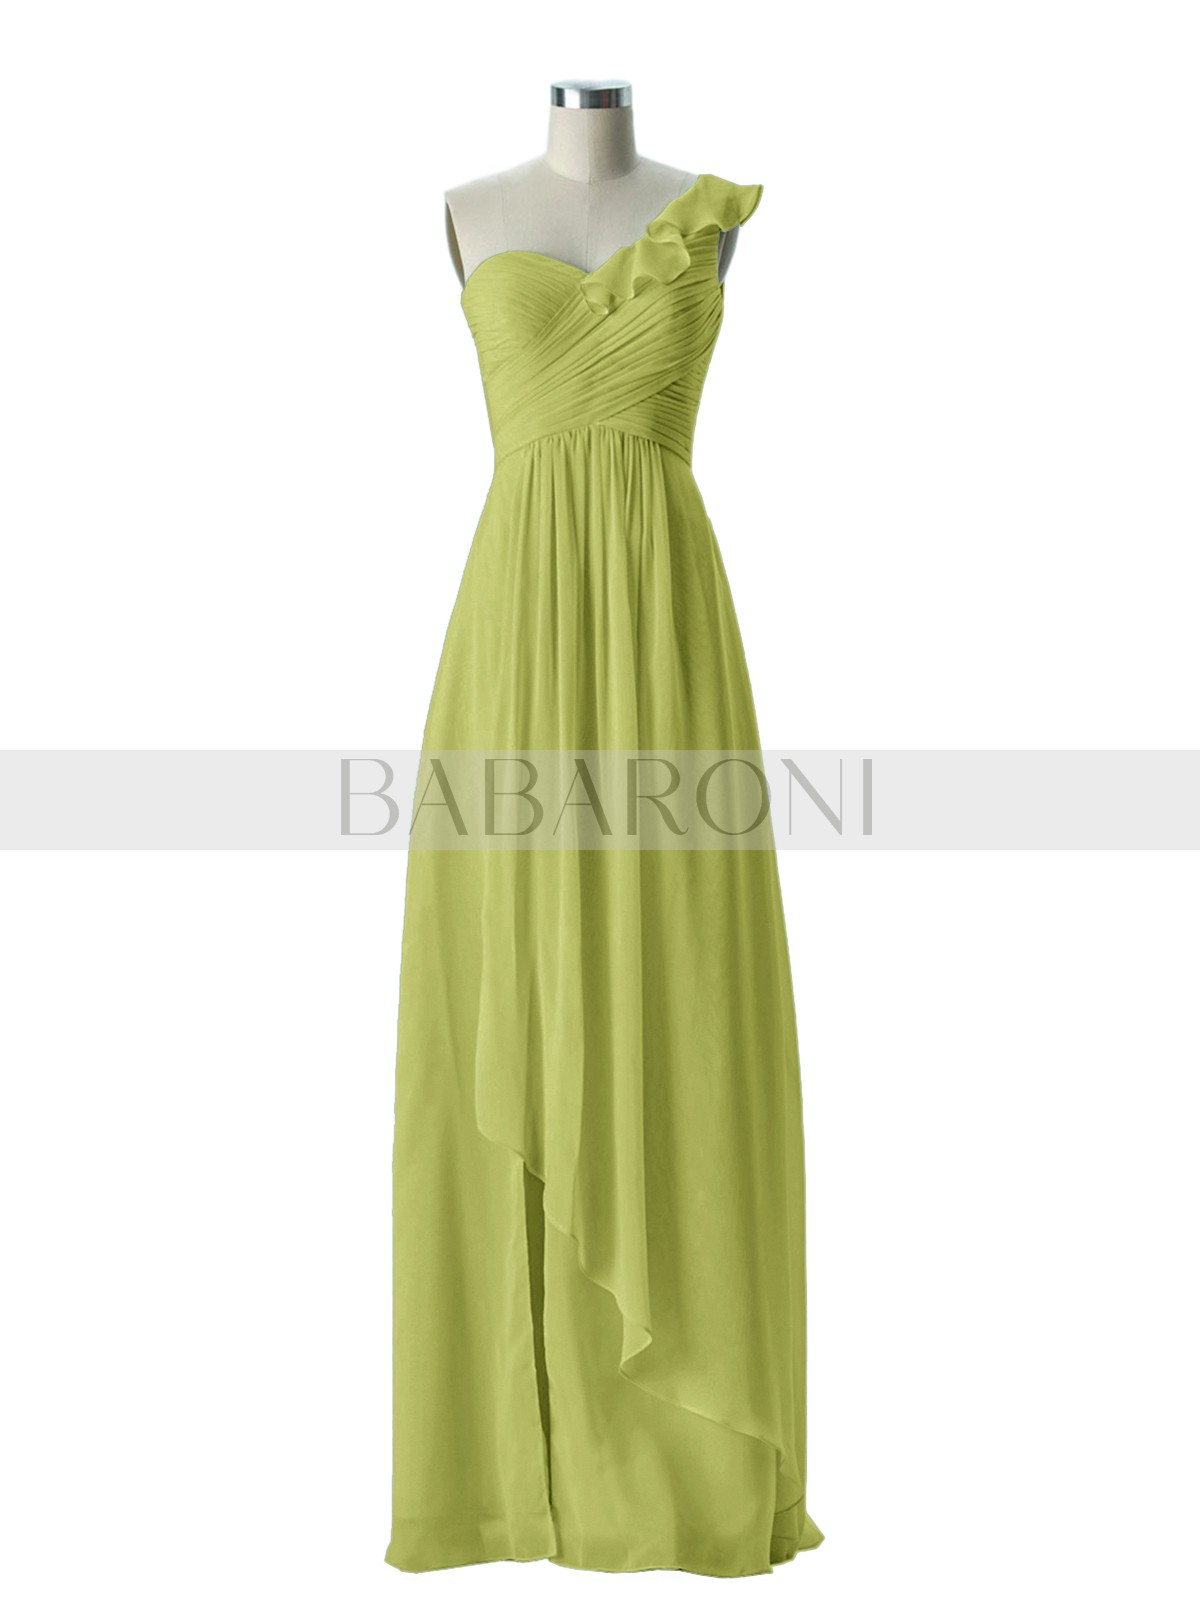 Home Bridesmaid Dresses Babaroni Eden A Line Chiffon Tangerine Zipper Ruffle Ruched Pleated Floor Length One Shoulder Loading Zoom